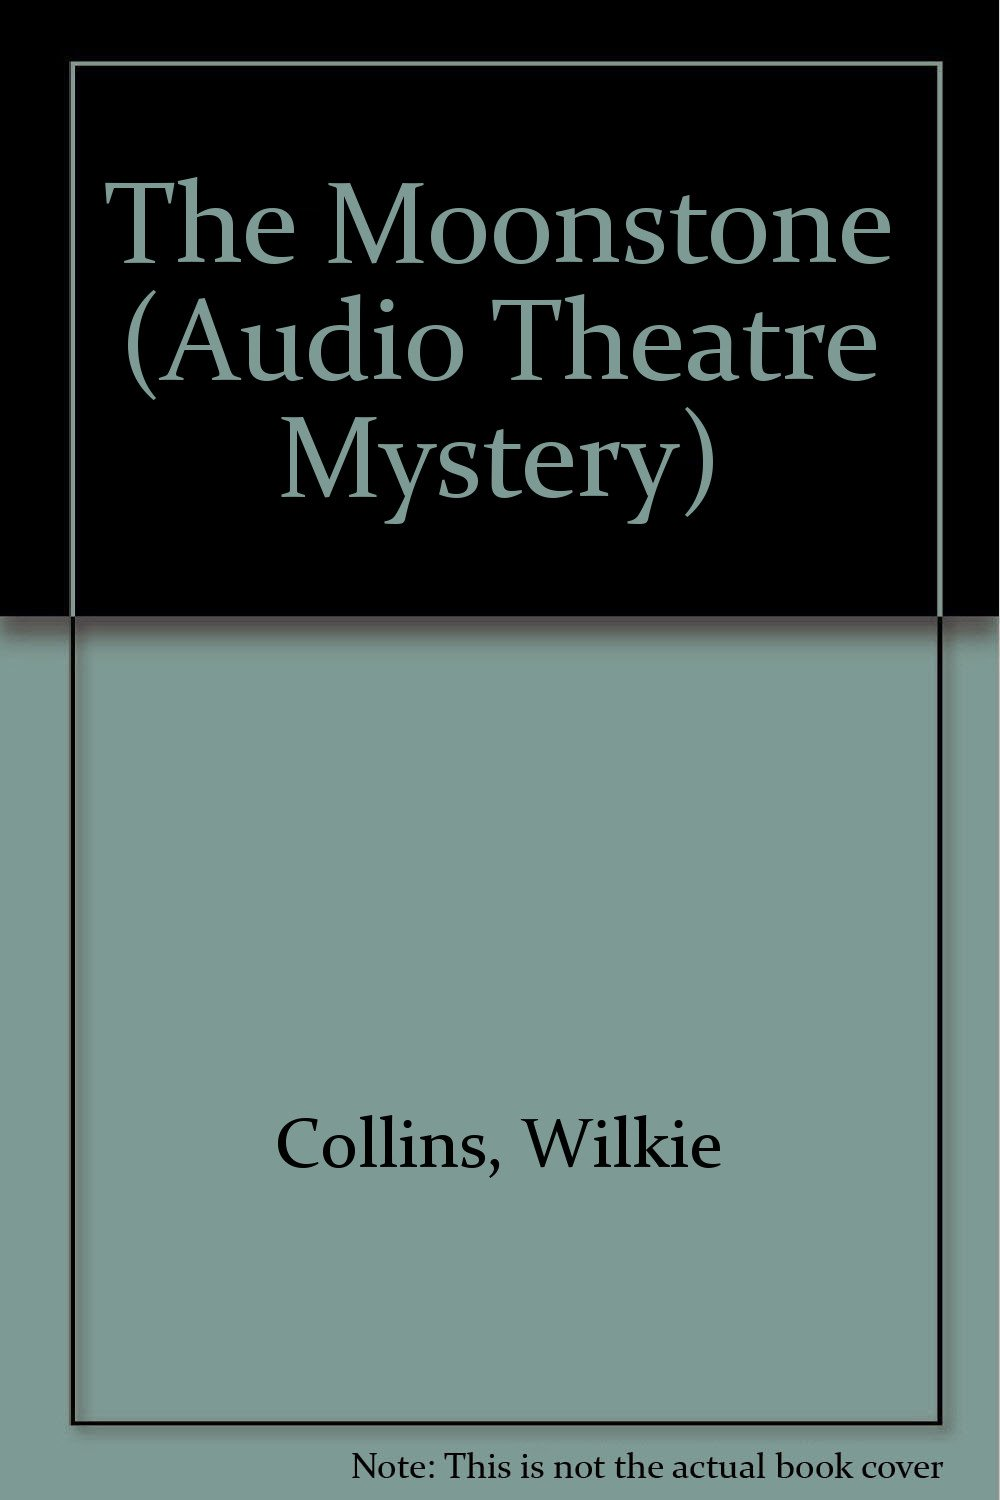 The Moonstone, The (Audio Theatre Mystery): Amazon.es: Wilkie Collins: Libros en idiomas extranjeros